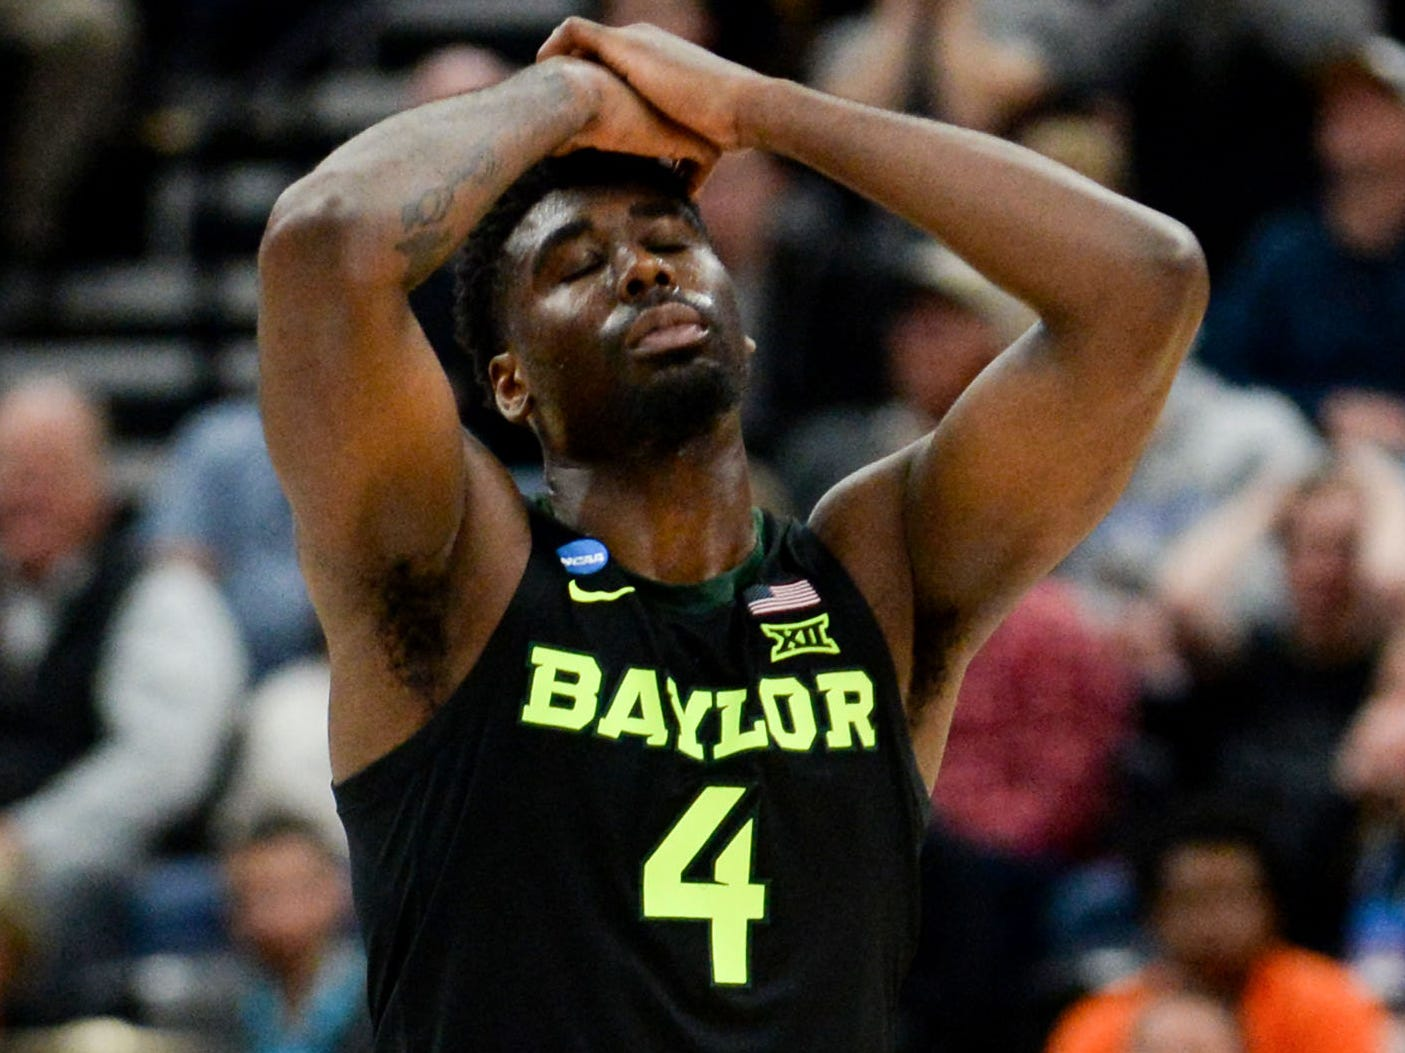 Round of 32: No. 9 Baylor loses to No. 1 Gonzaga, 83-71.